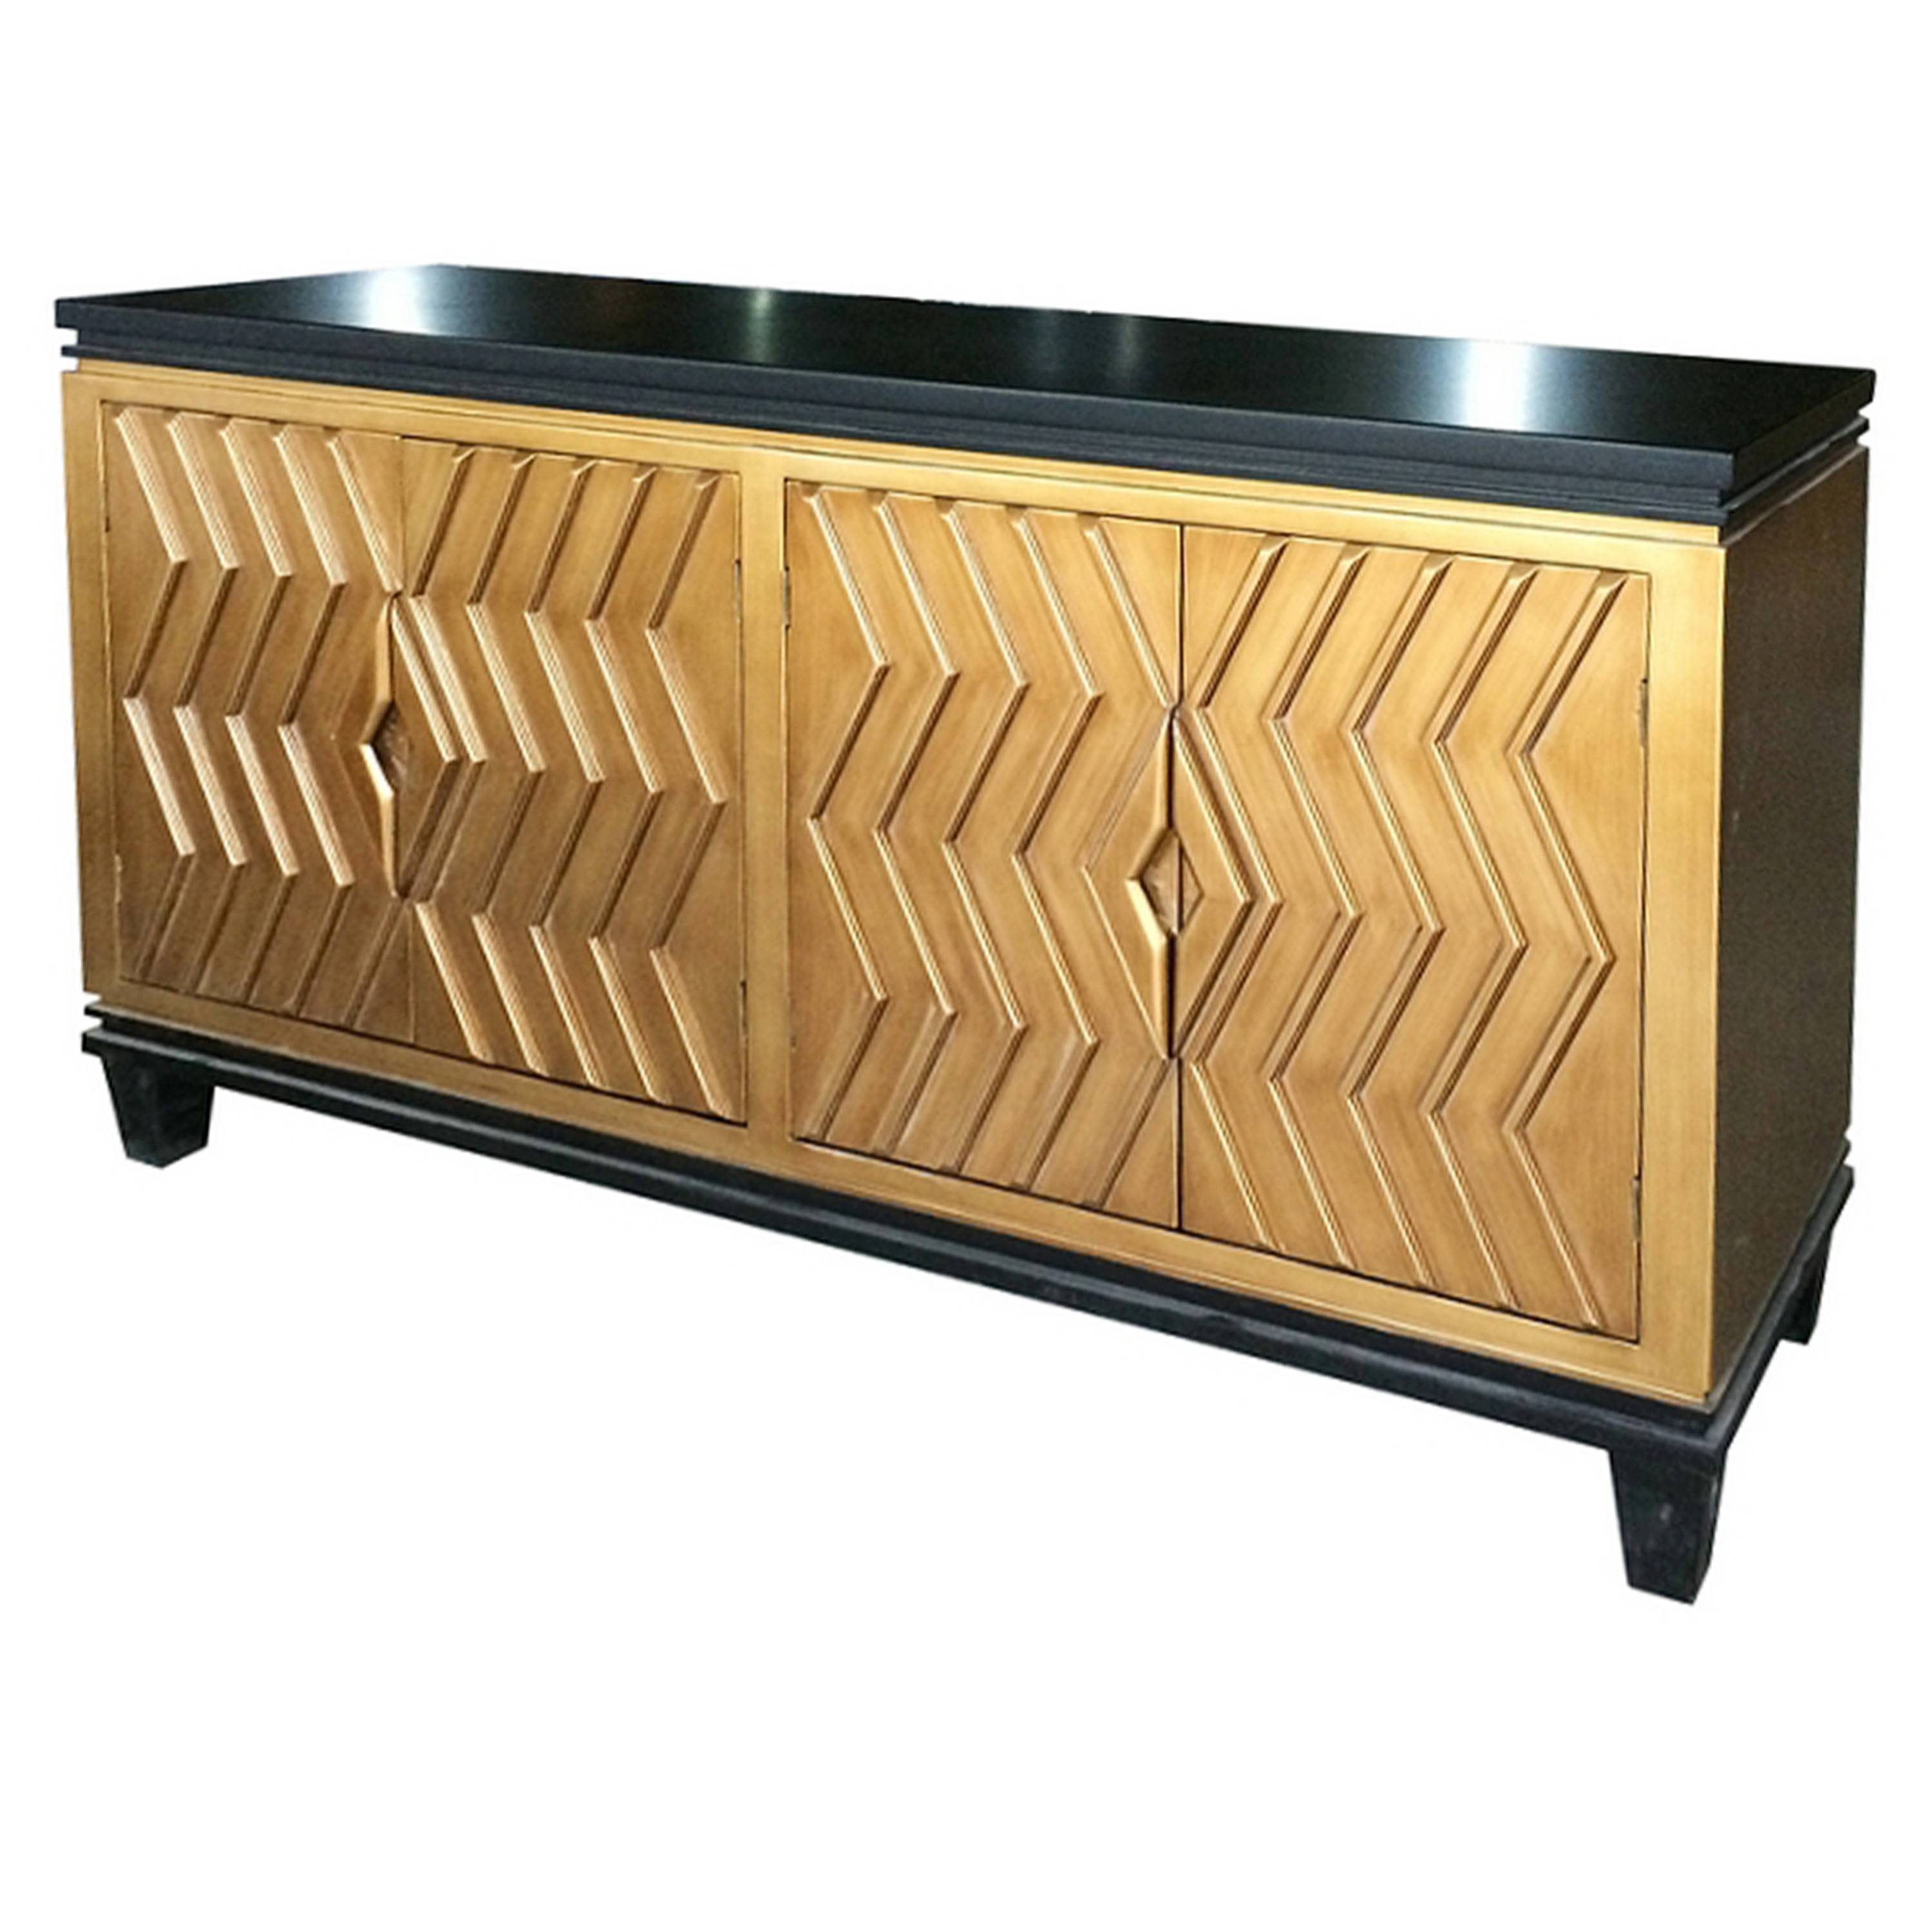 2100022 - Npd - New Pacific Direct Furniture | Stylish with Fully Assembled Sideboards (Image 3 of 30)